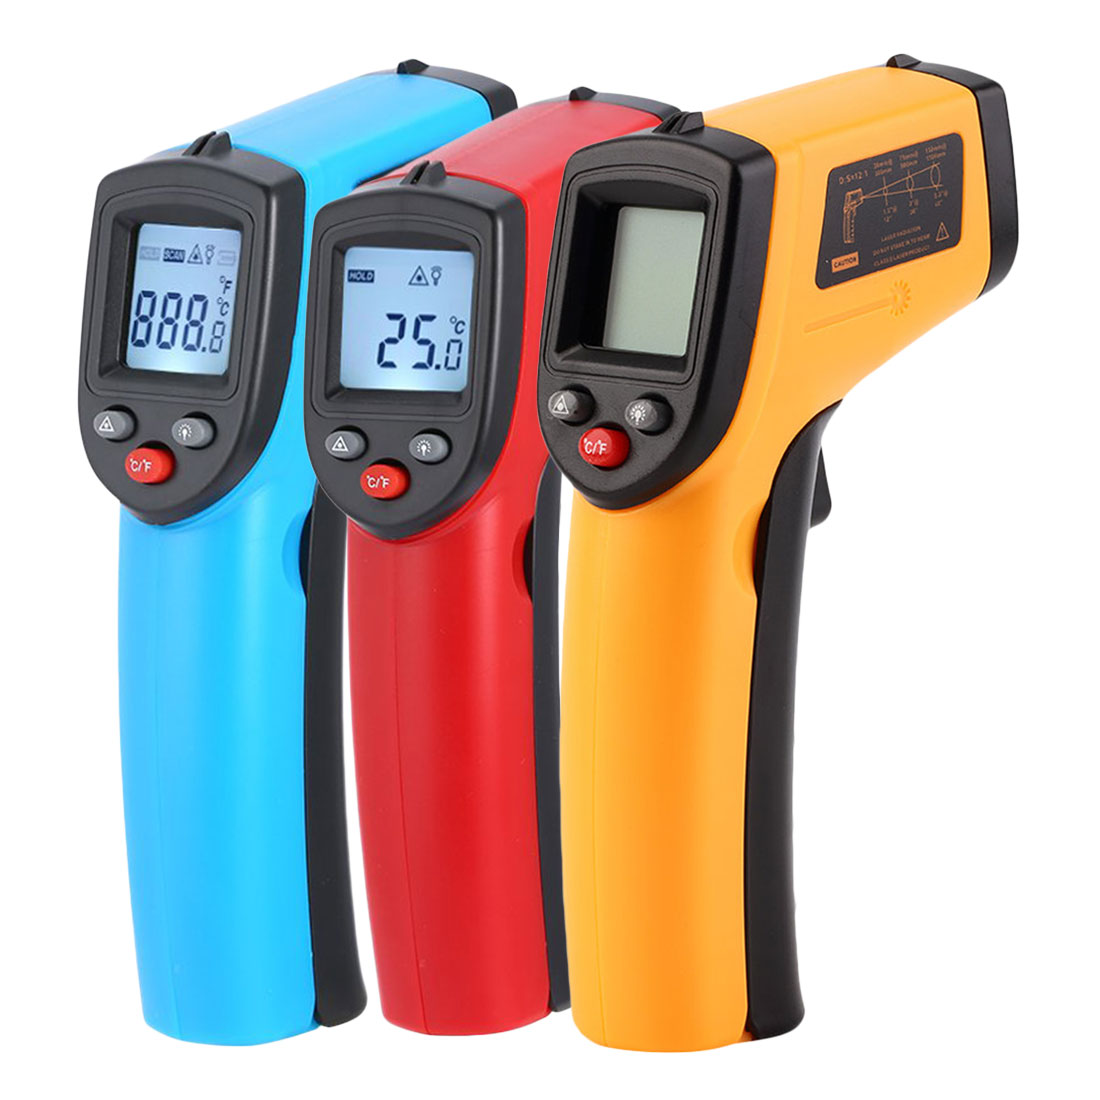 -50~380C Digital GM320 Infrared Thermometer Non Contact Infrared Thermometer Pyrometer IR Laser Temperature Meter Gun -50~380C Digital GM320 Infrared Thermometer Non Contact Infrared Thermometer Pyrometer IR Laser Temperature Meter Gun